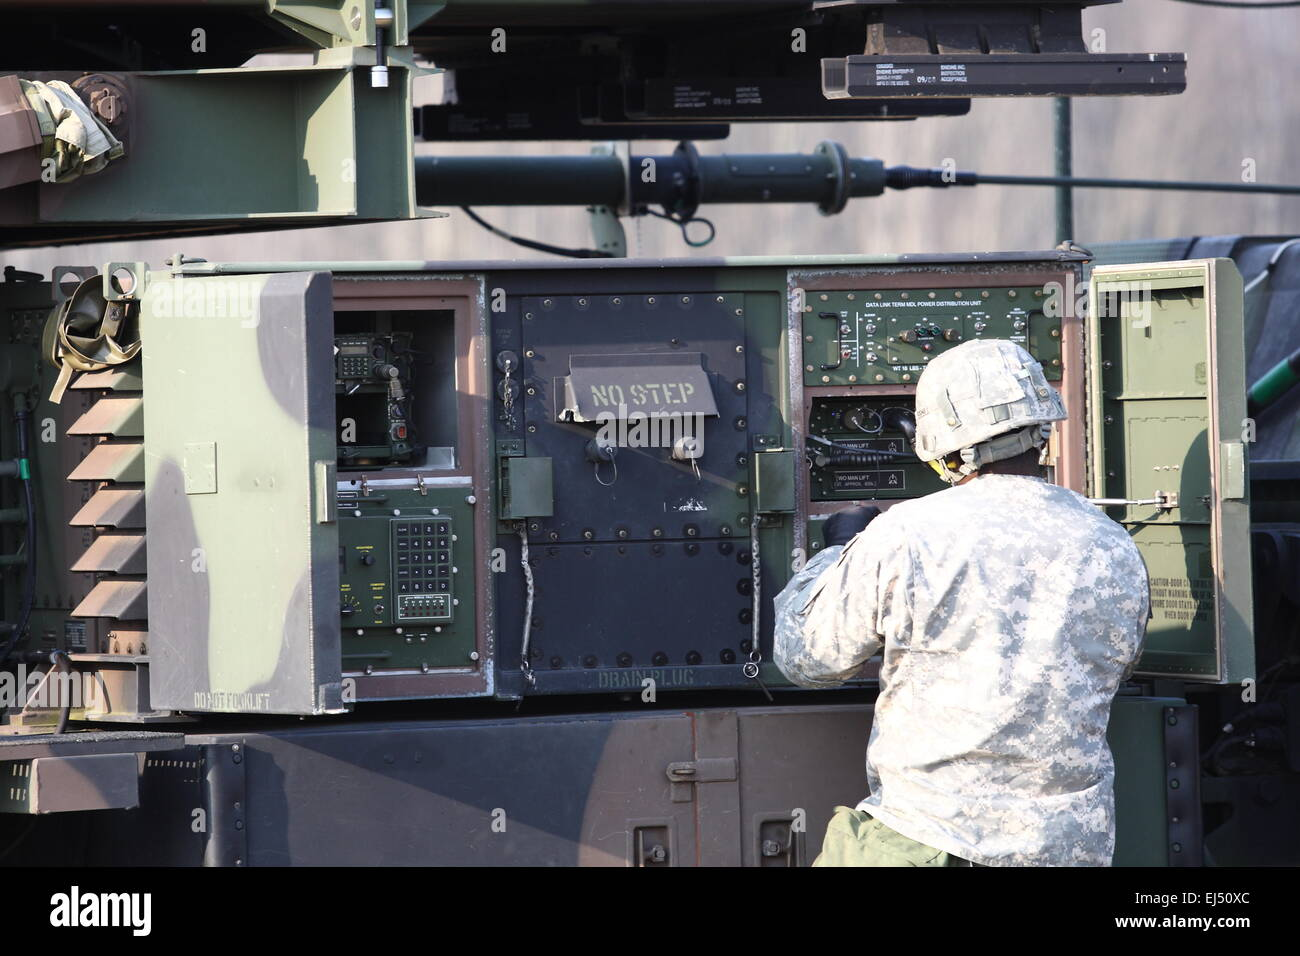 Sochaczew, Poland 21st, March 2015 U.S. Army Europe's 10th Army Air and Missile Defense Unit deployed to Poland - Stock Image